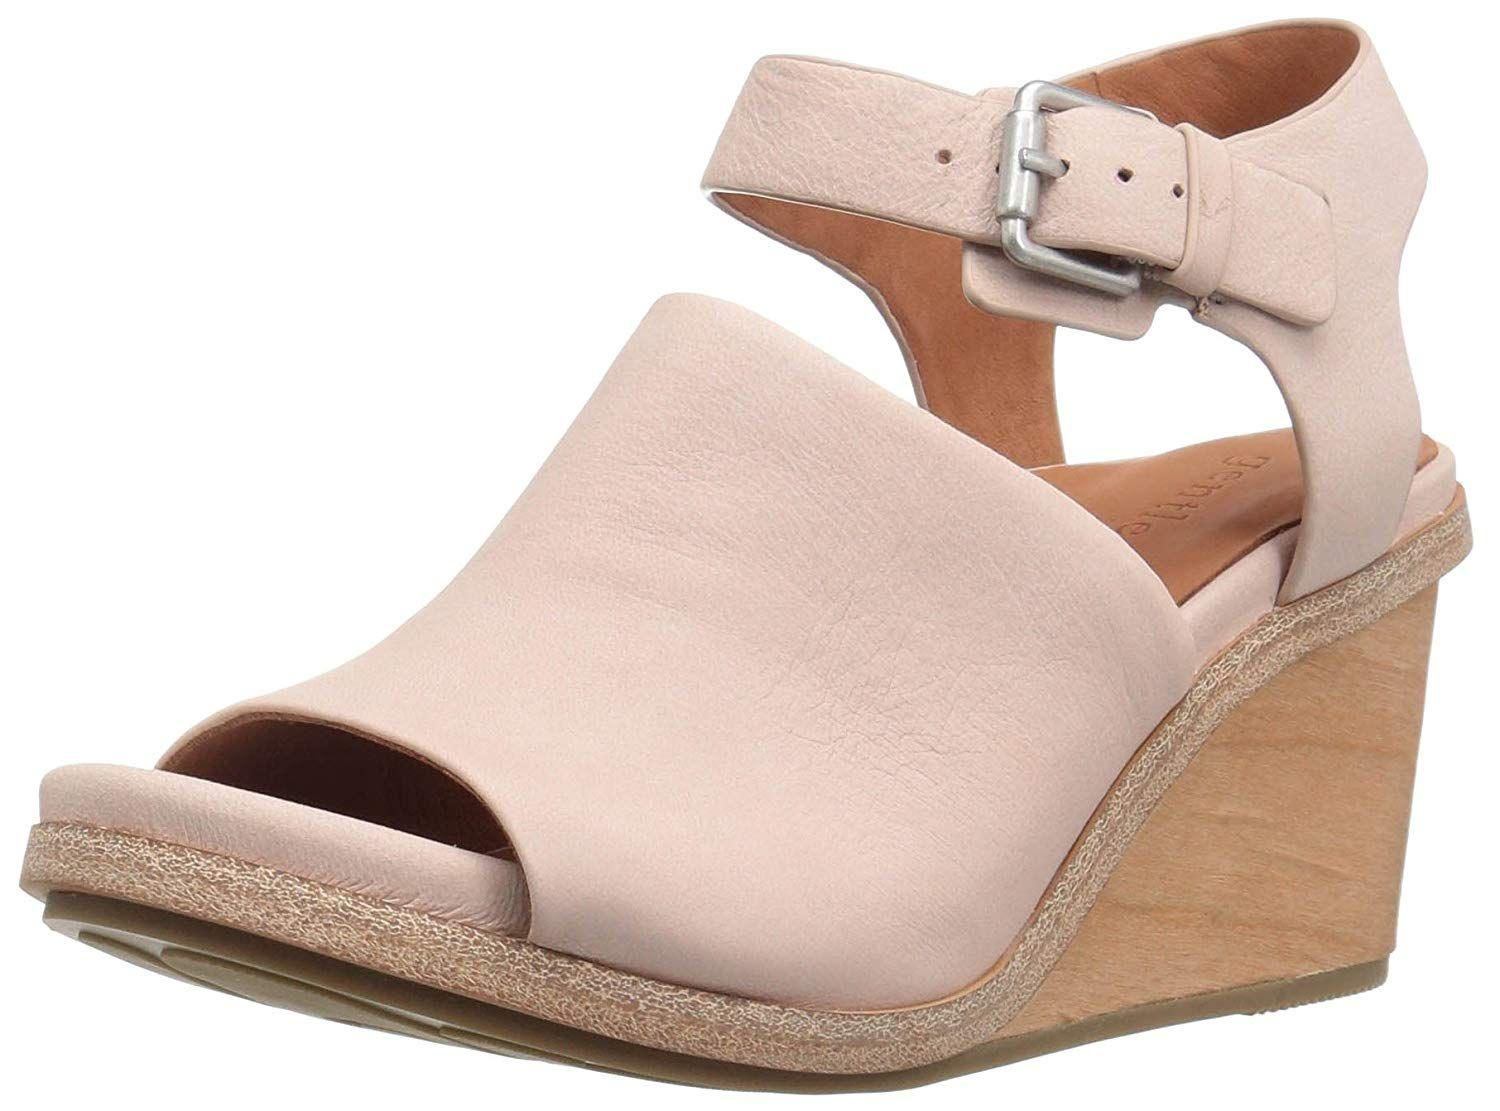 90d74b3dc1c4 Lyst - Gentle Souls By Kenneth Cole Women s Gerry Wedge Sandal in Brown